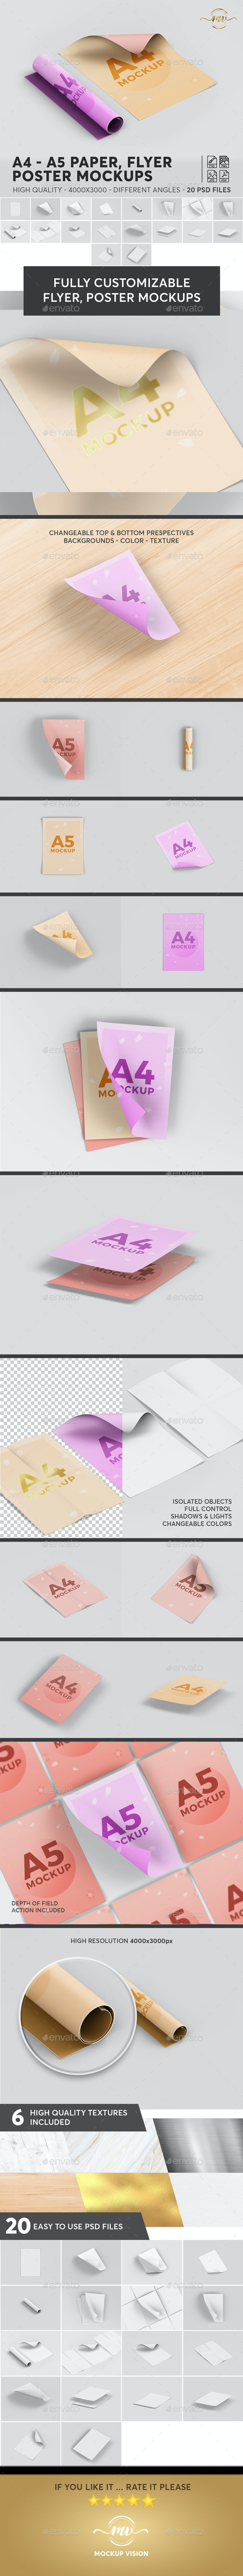 A4 - A5 Paper / Flyer / Poster Mockups V2 - Posters Print